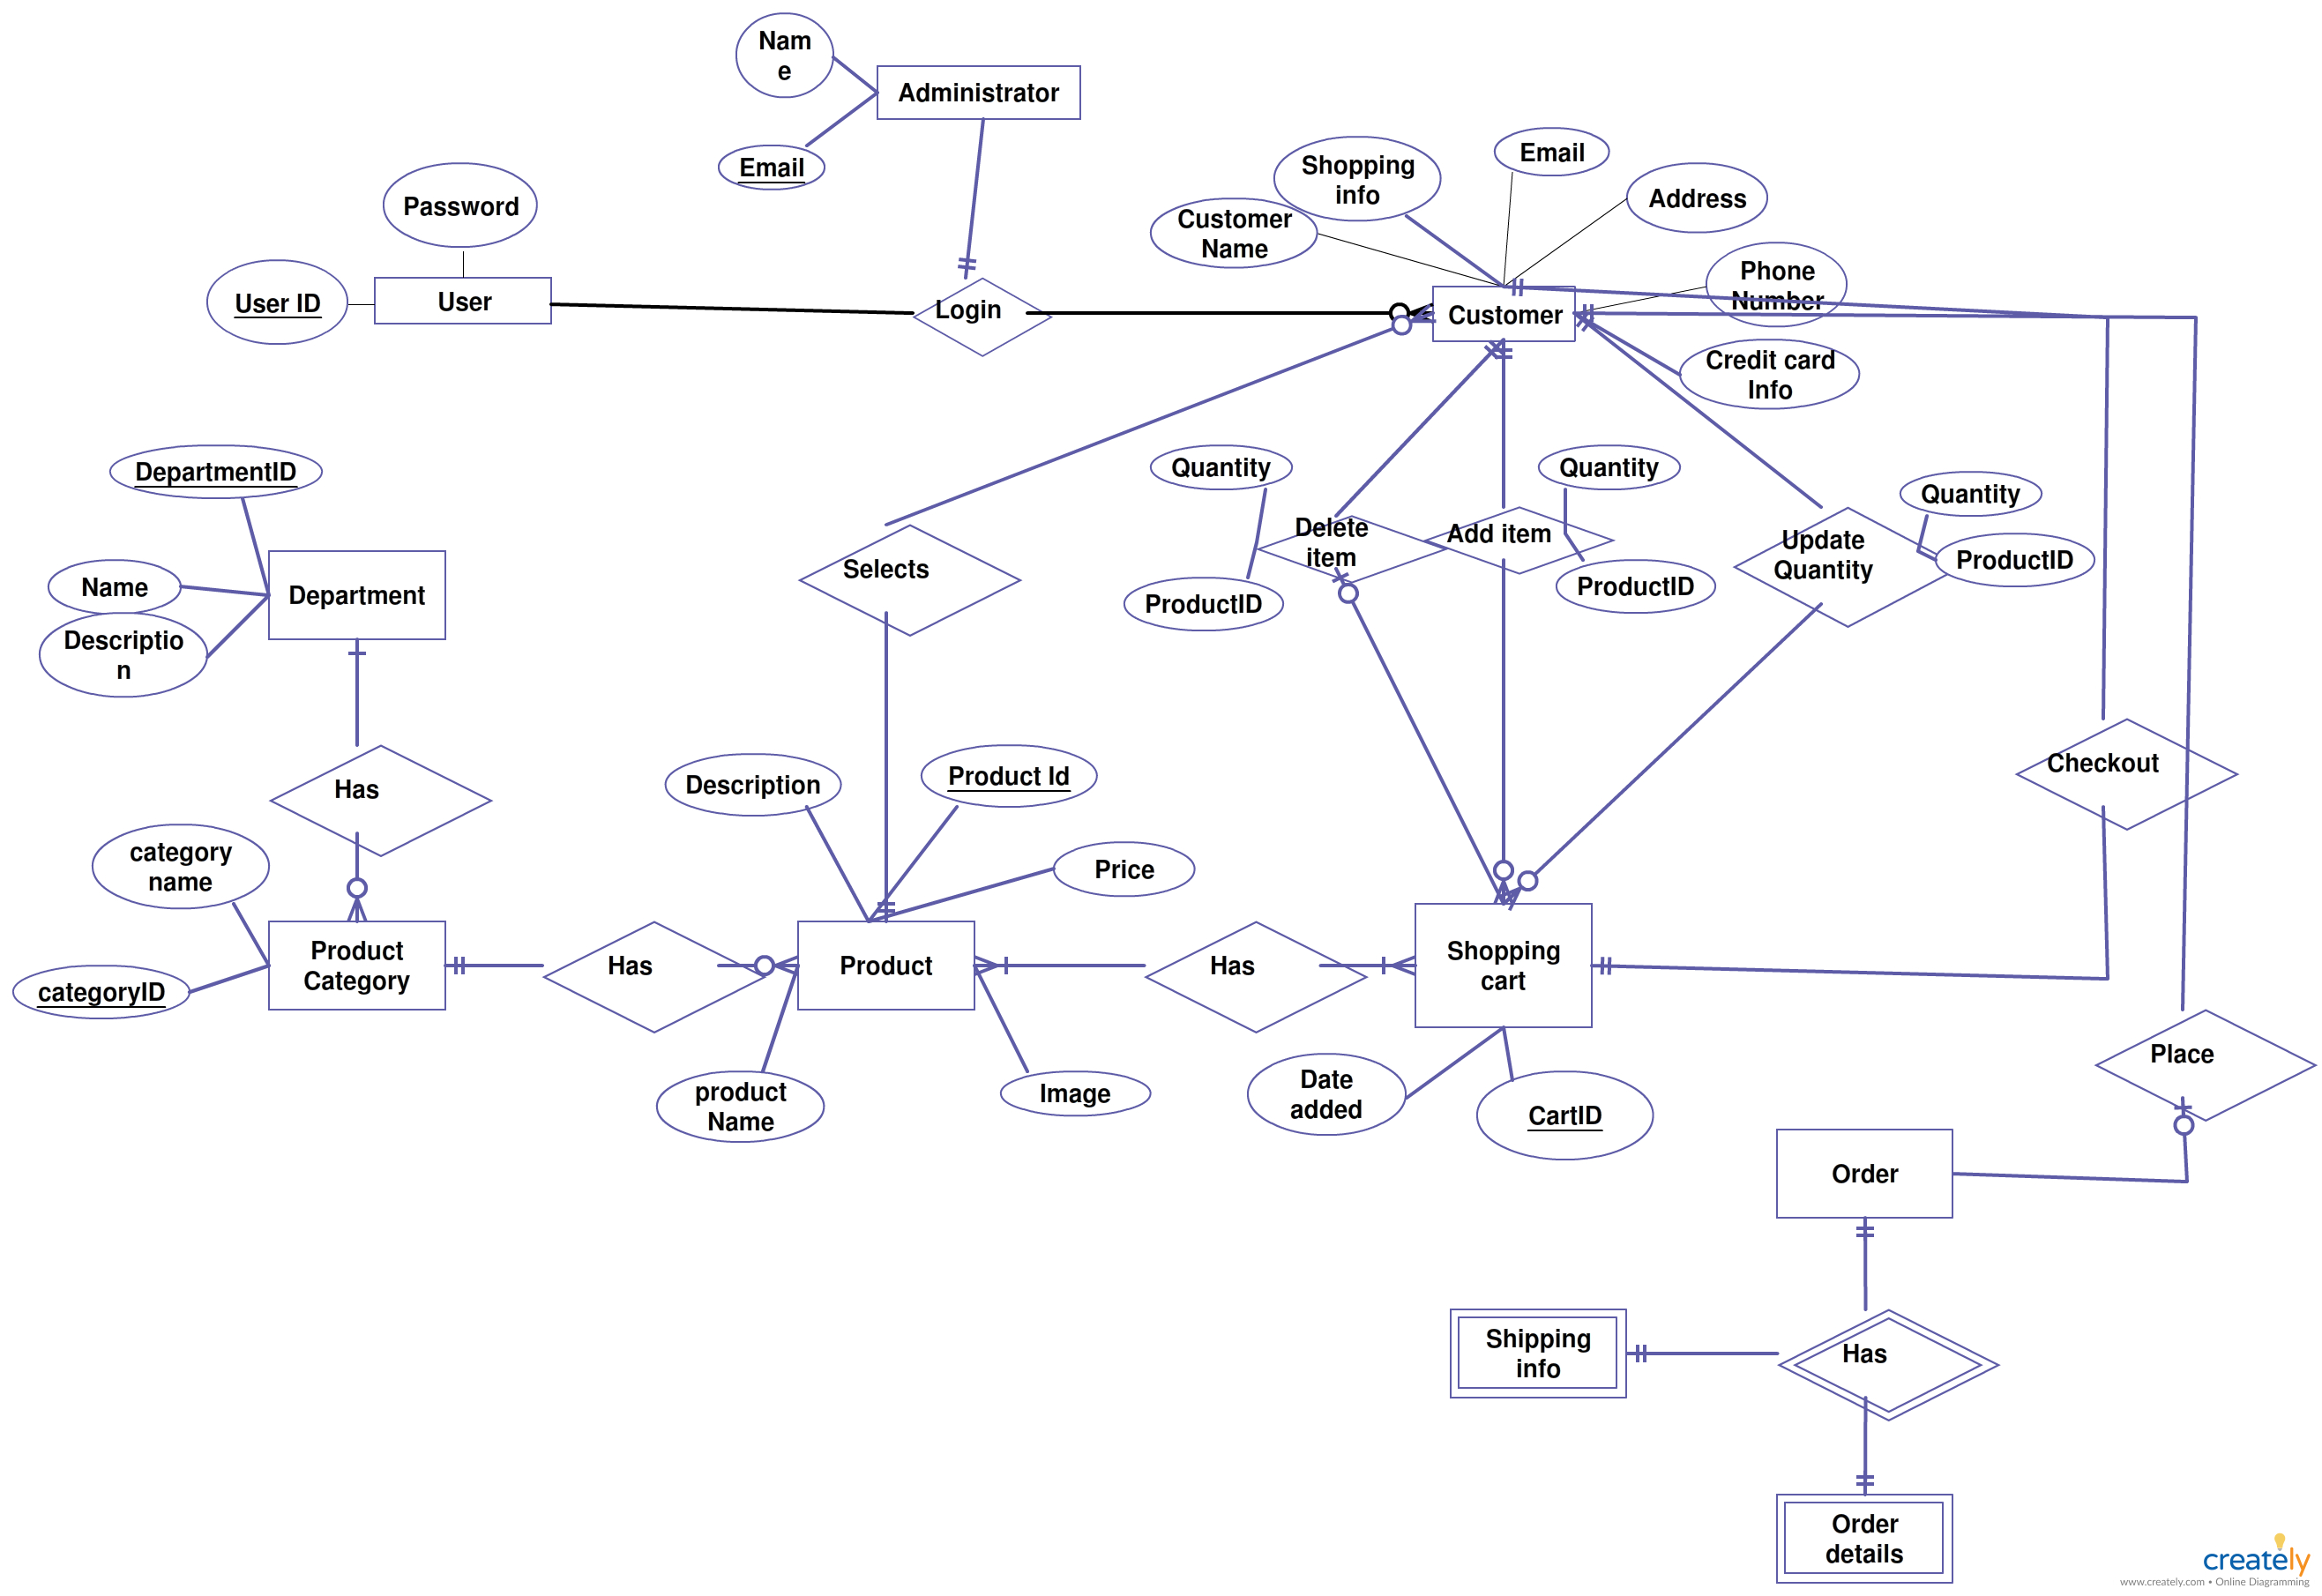 Er Diagrams Help Us To Visualize How Data Is Connected In A General for Er Diagram Examples For Insurance